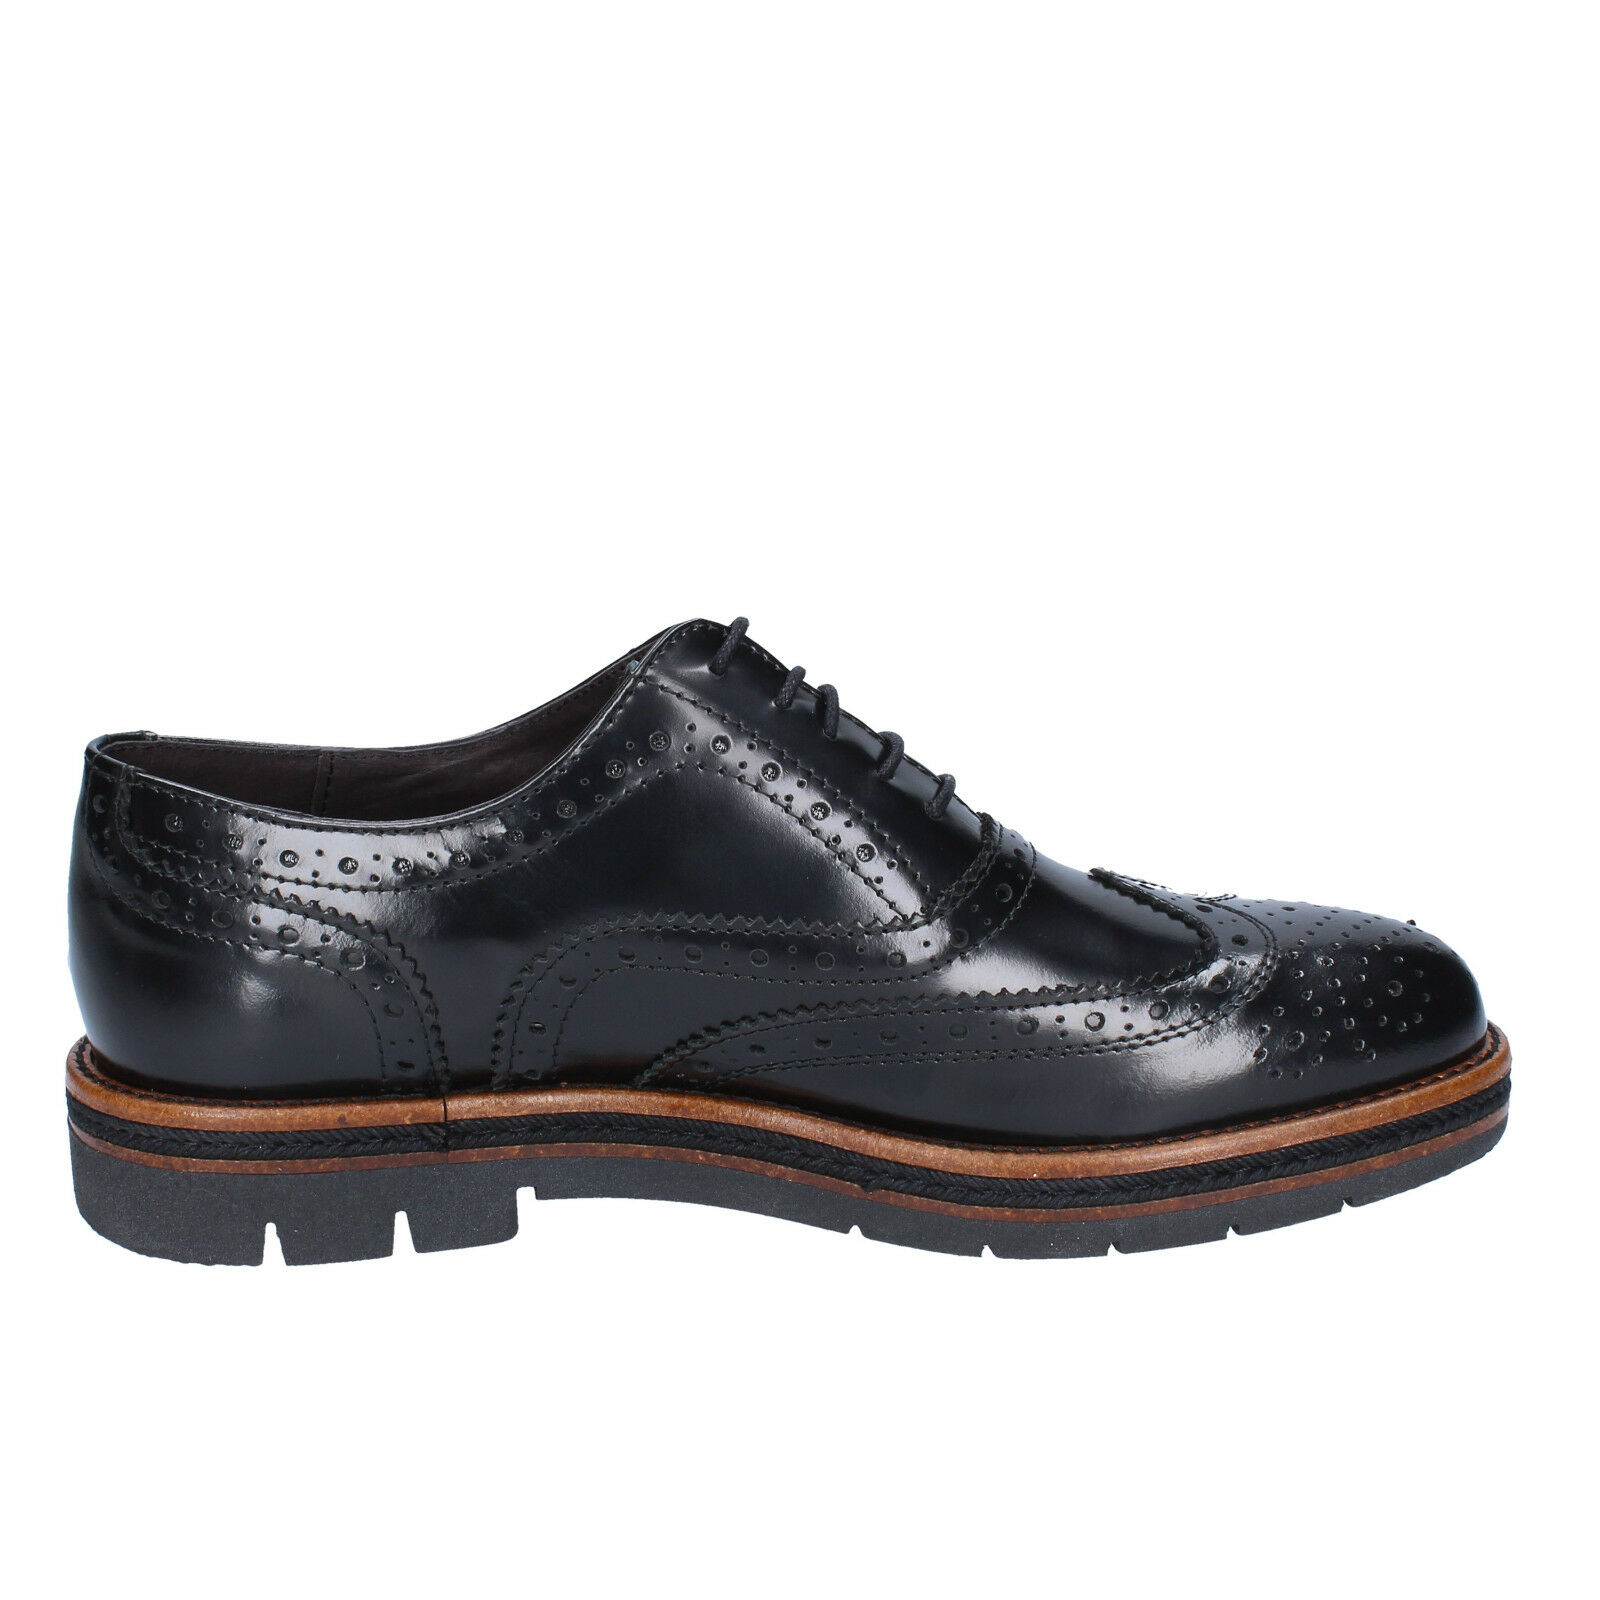 mens 41) shoes OSSIANI 7 (EU 41) mens elegant black leather BX306-41 069bce